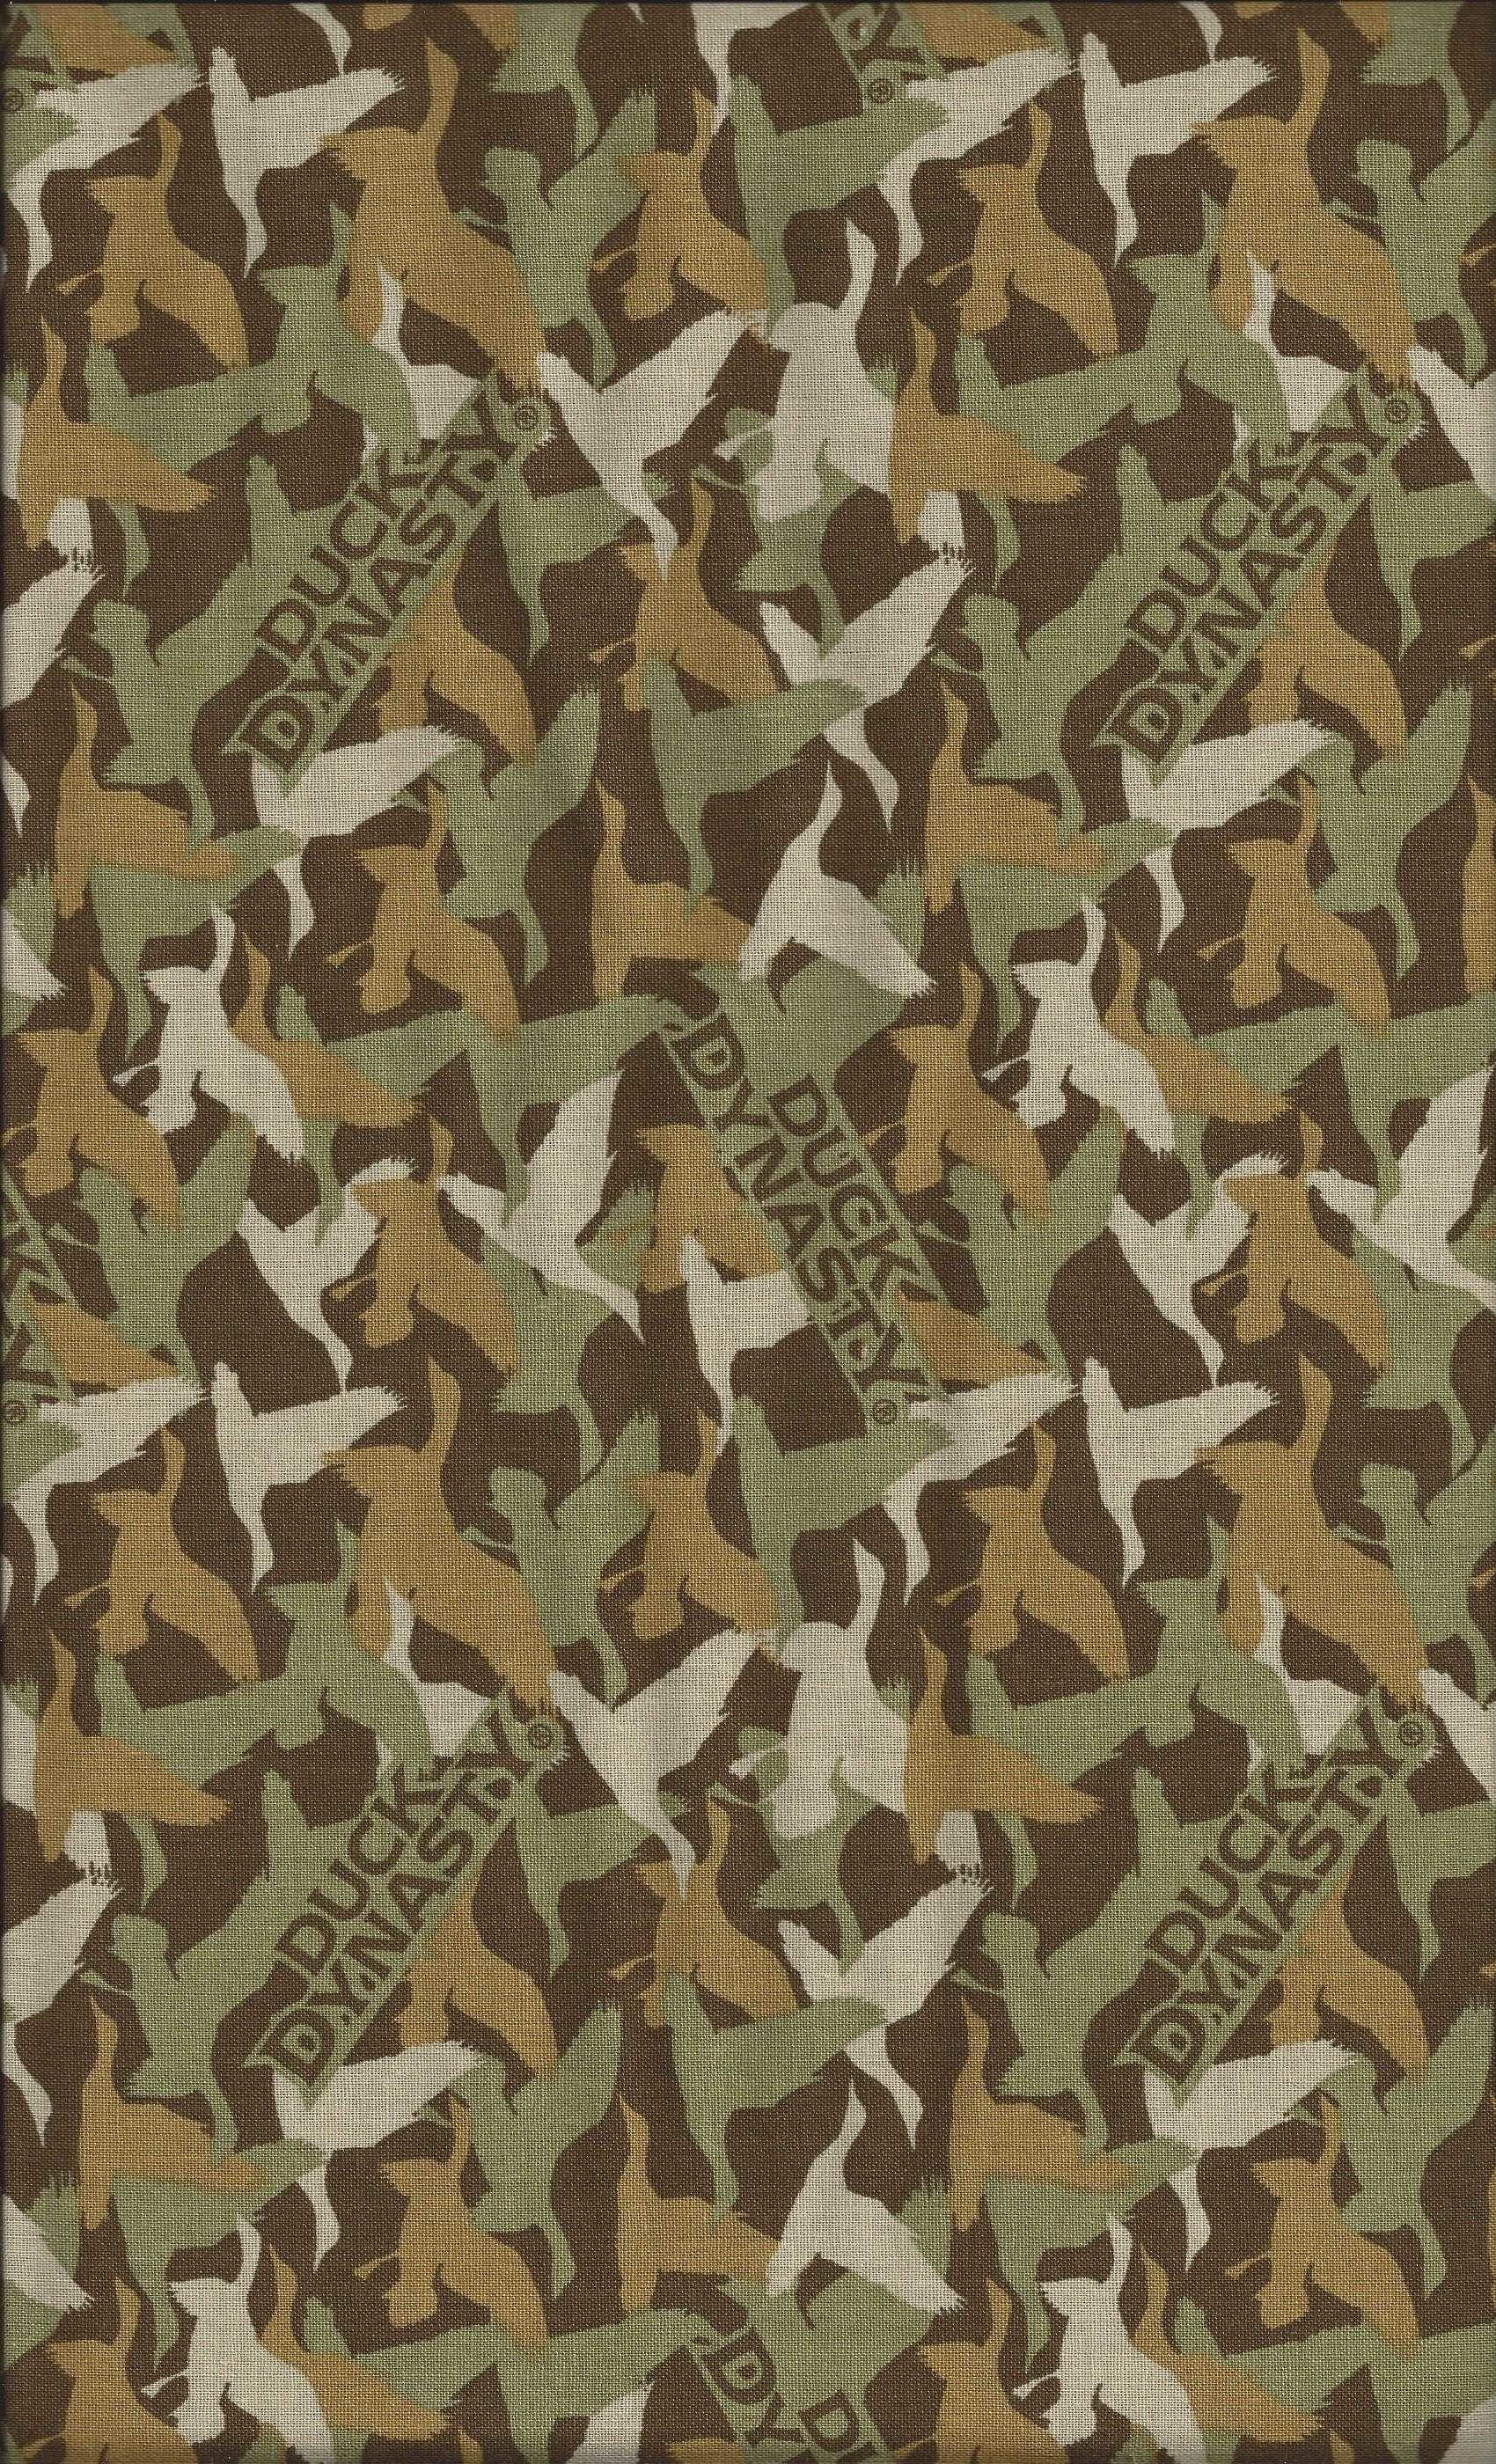 Res: 1700x2800, Desktop For Duck Dynasty Camouflage Primary Weighted Blanket Pattern  Wallpaper Hd Pics Smartphone